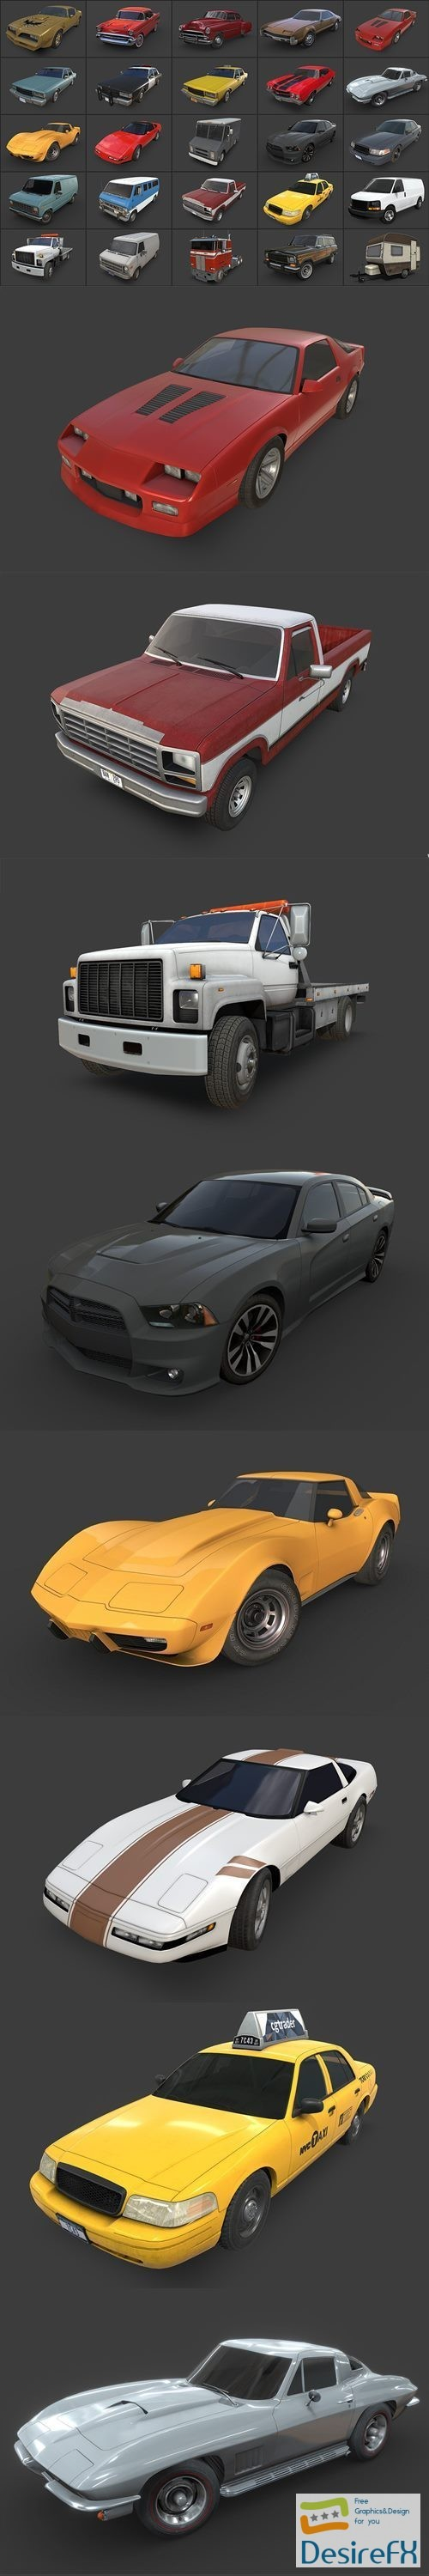 3d-models - American Cars Ultimate Collection 3D Models